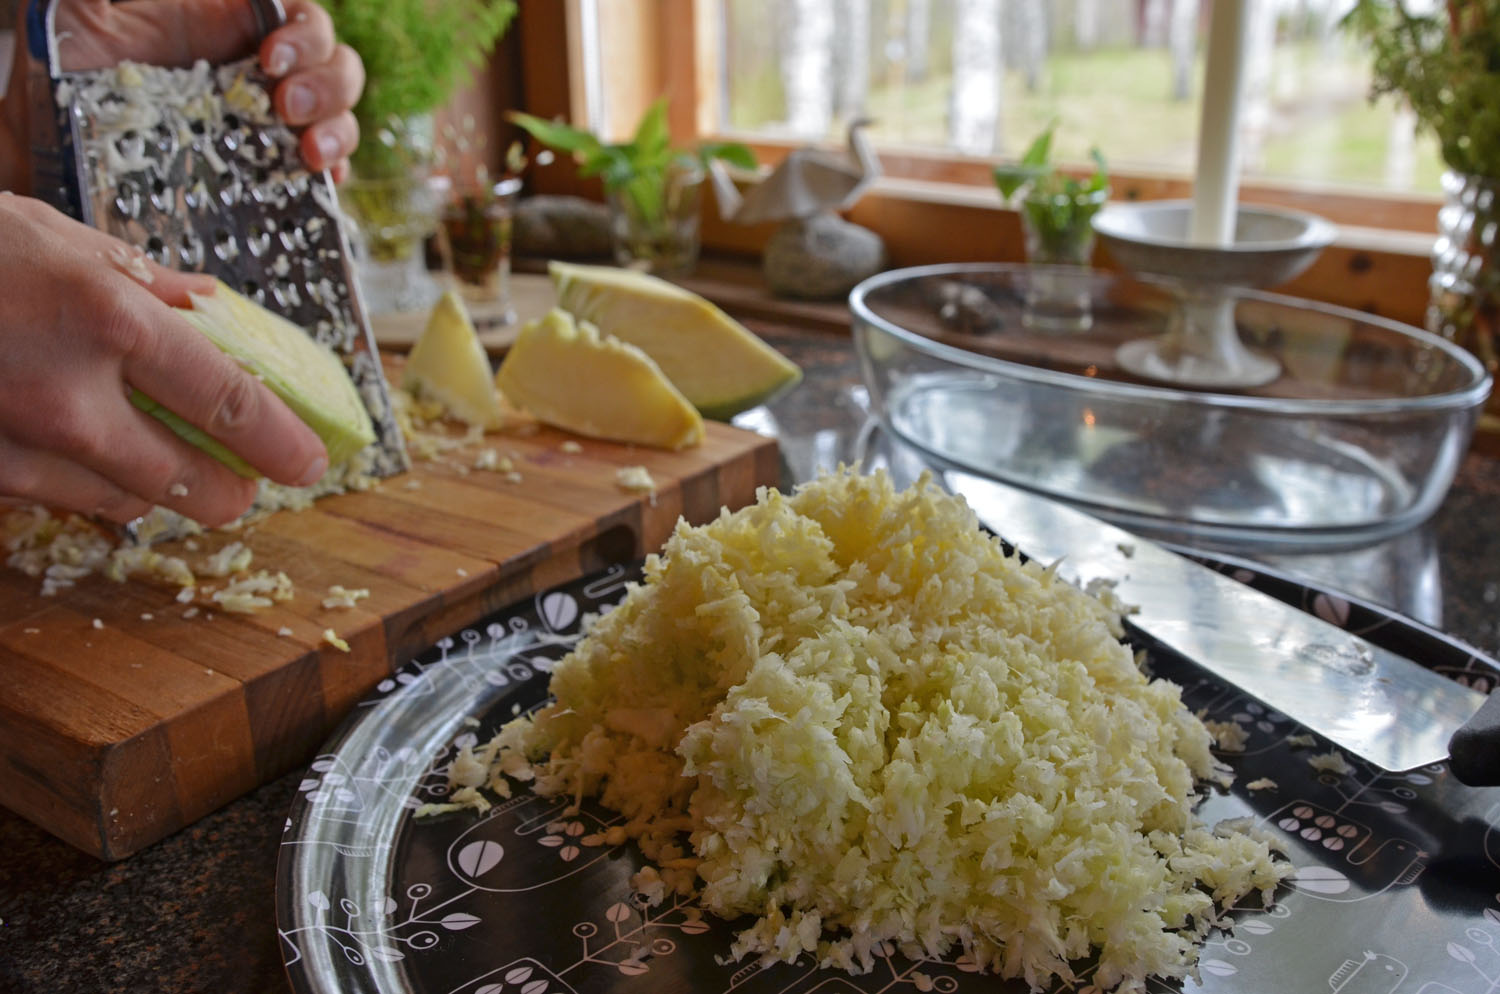 Grating white cabbage for traditional Finnish cabbage casserole